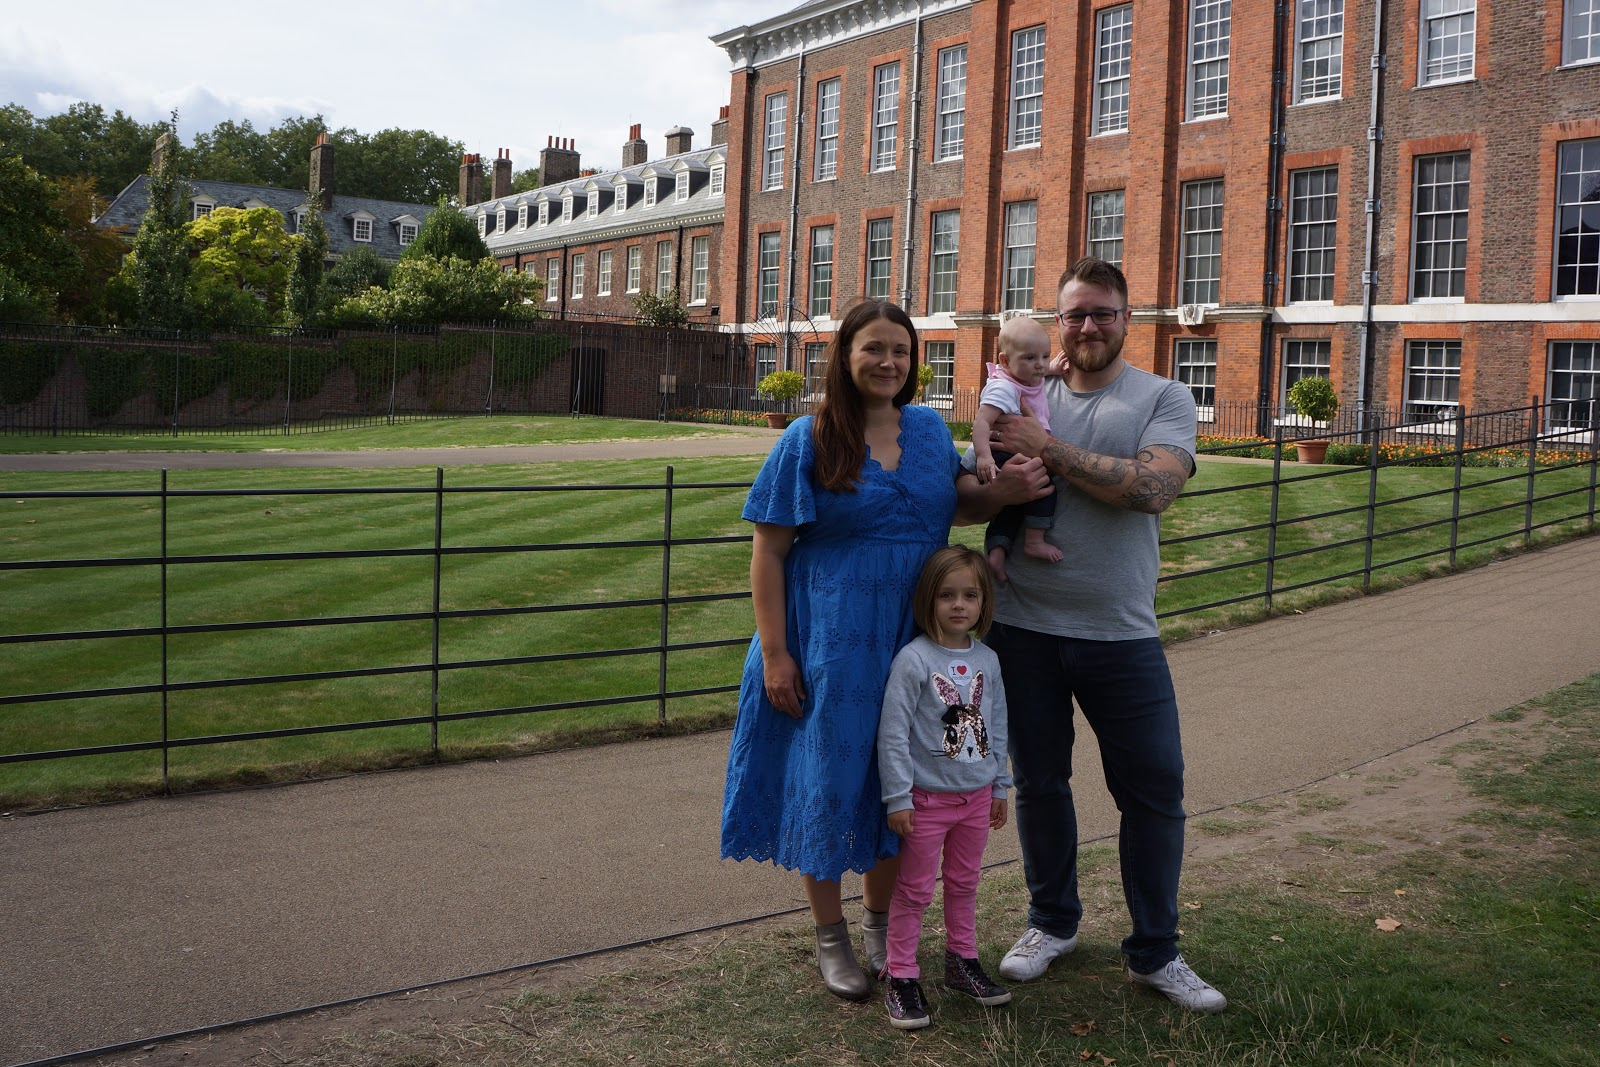 kensington palace family photo